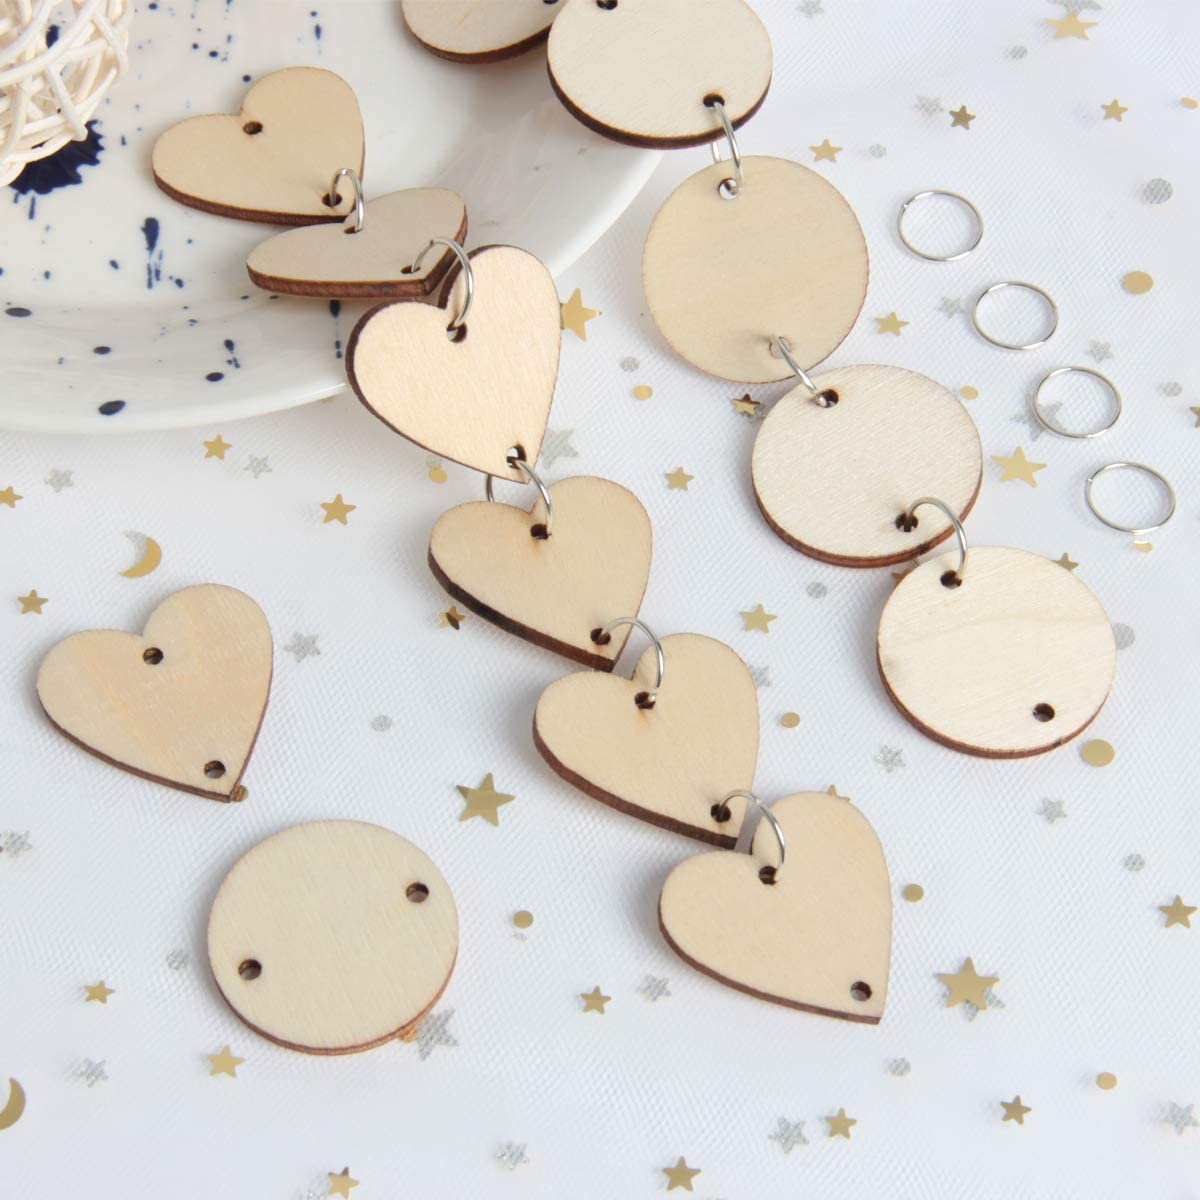 Art Crafts 3cm yalansmaiP 200 Pieces Wooden Circles Wooden Heart Discs with Holes and 200 Pieces 12mm Rings Birthday Boards Wood Slices Discs Tags for Wedding Christmas Ornaments